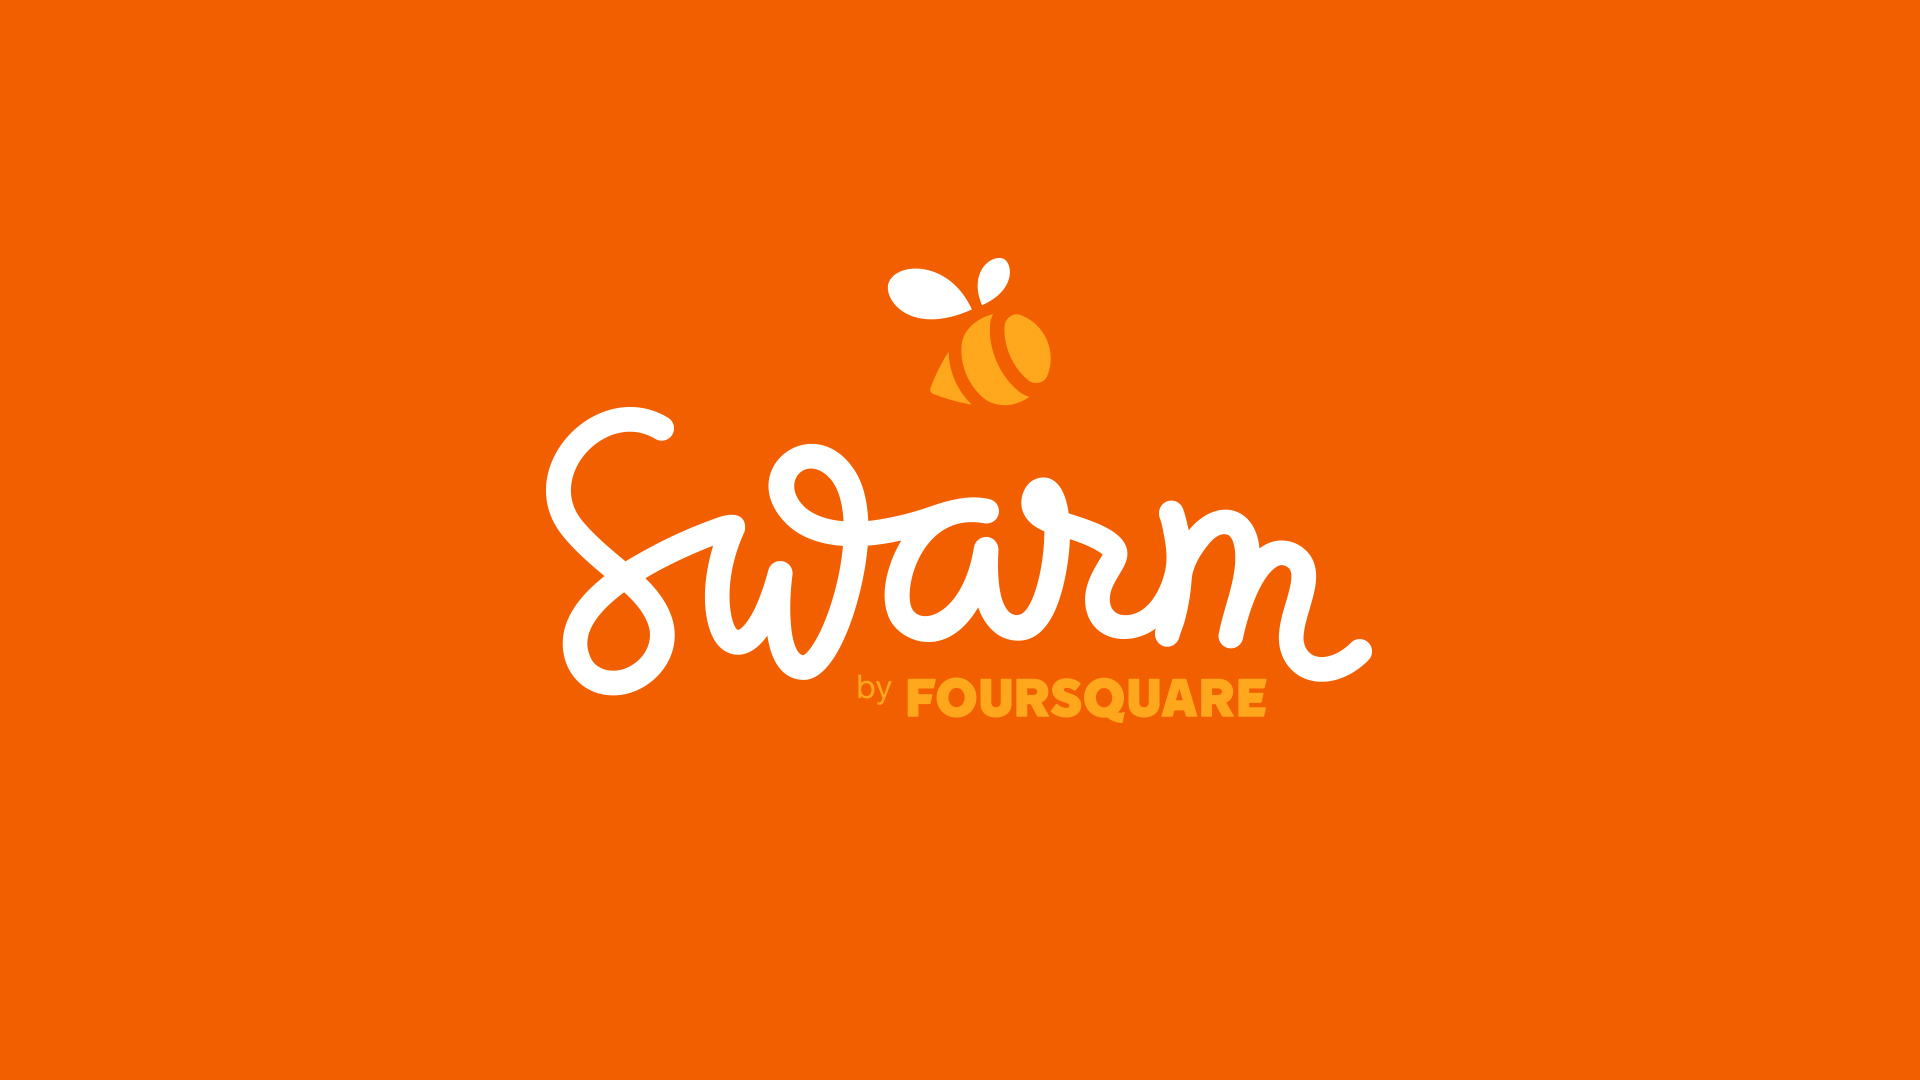 h4>Swarm by Foursquare</h4><br...